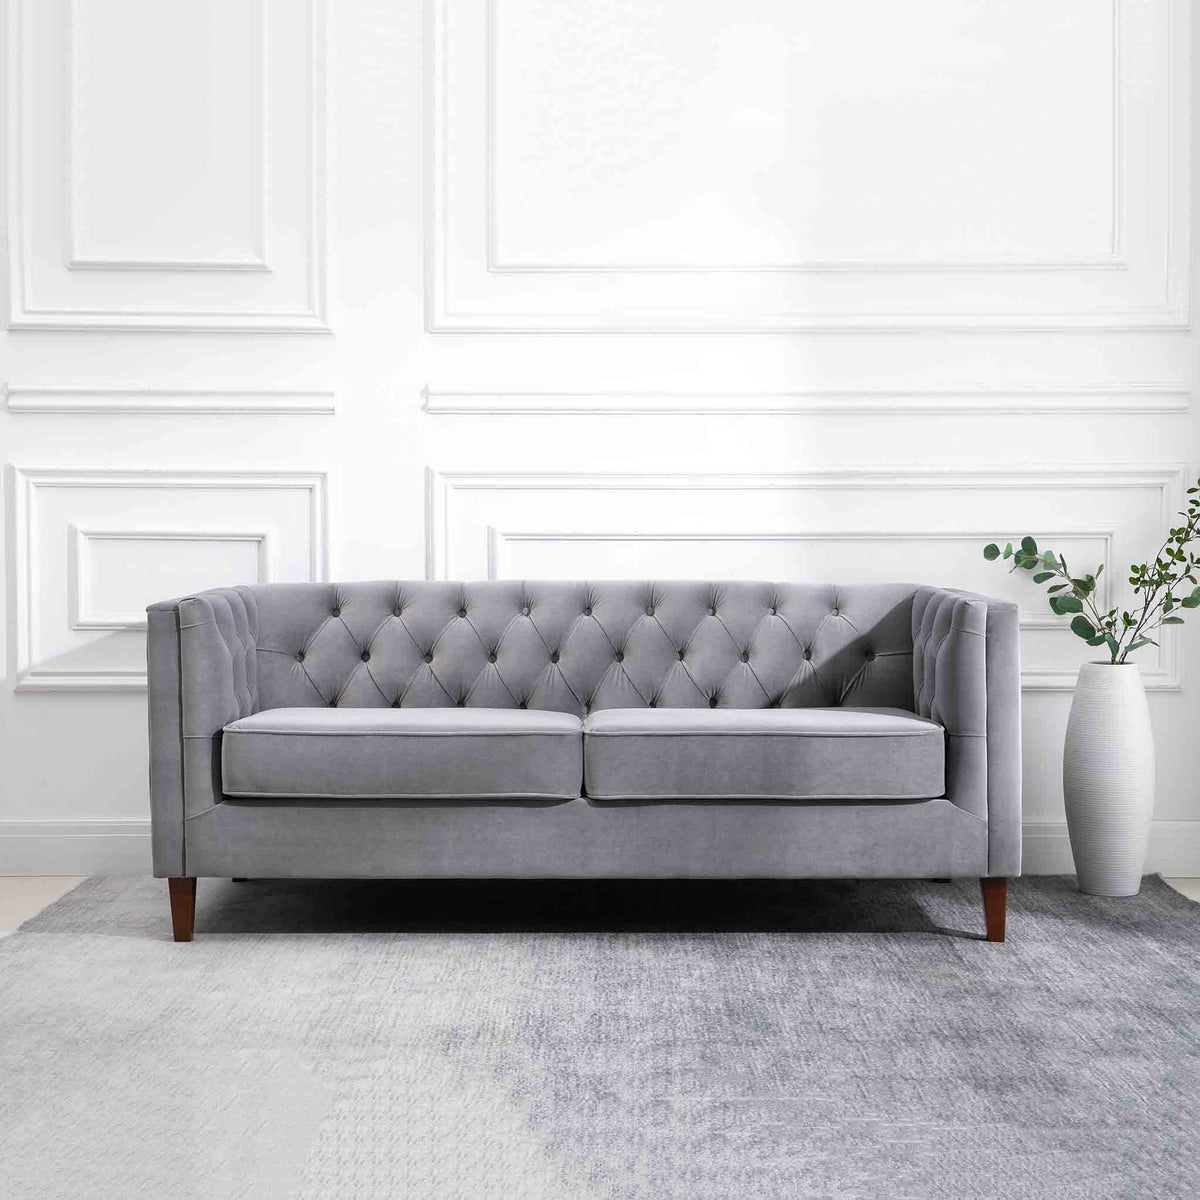 Eliza Grey 3 Seater Chesterfield Sofa - Lifestyle